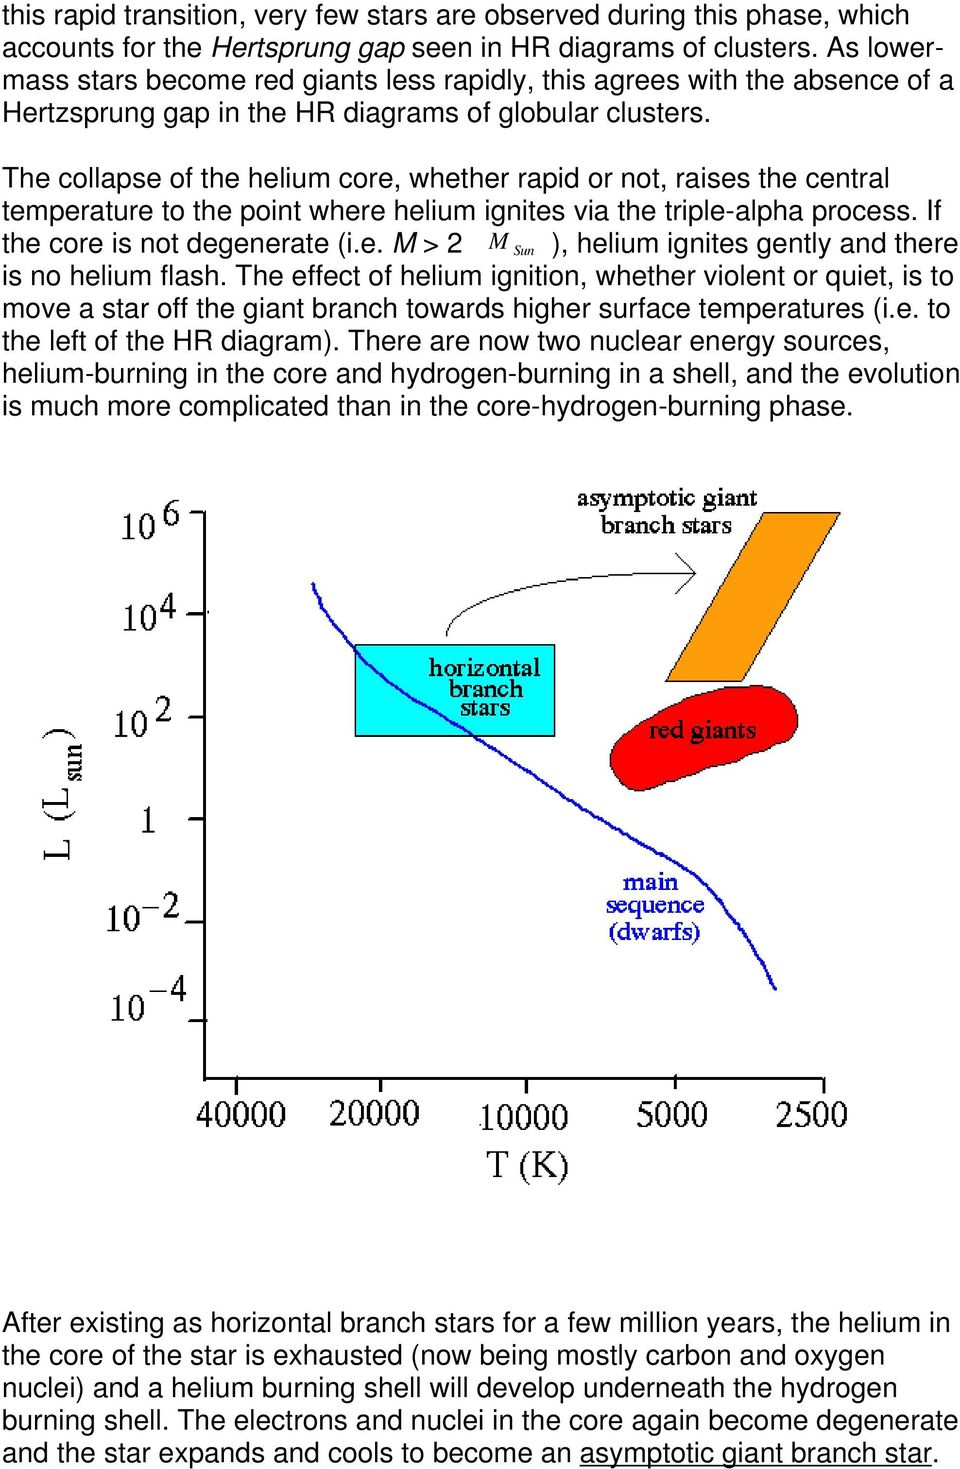 The collapse of the helium core, whether rapid or not, raises the central temperature to the point where helium ignites via the triple-alpha process. If the core is not degenerate (i.e. M > 2 M Sun ), helium ignites gently and there is no helium flash.